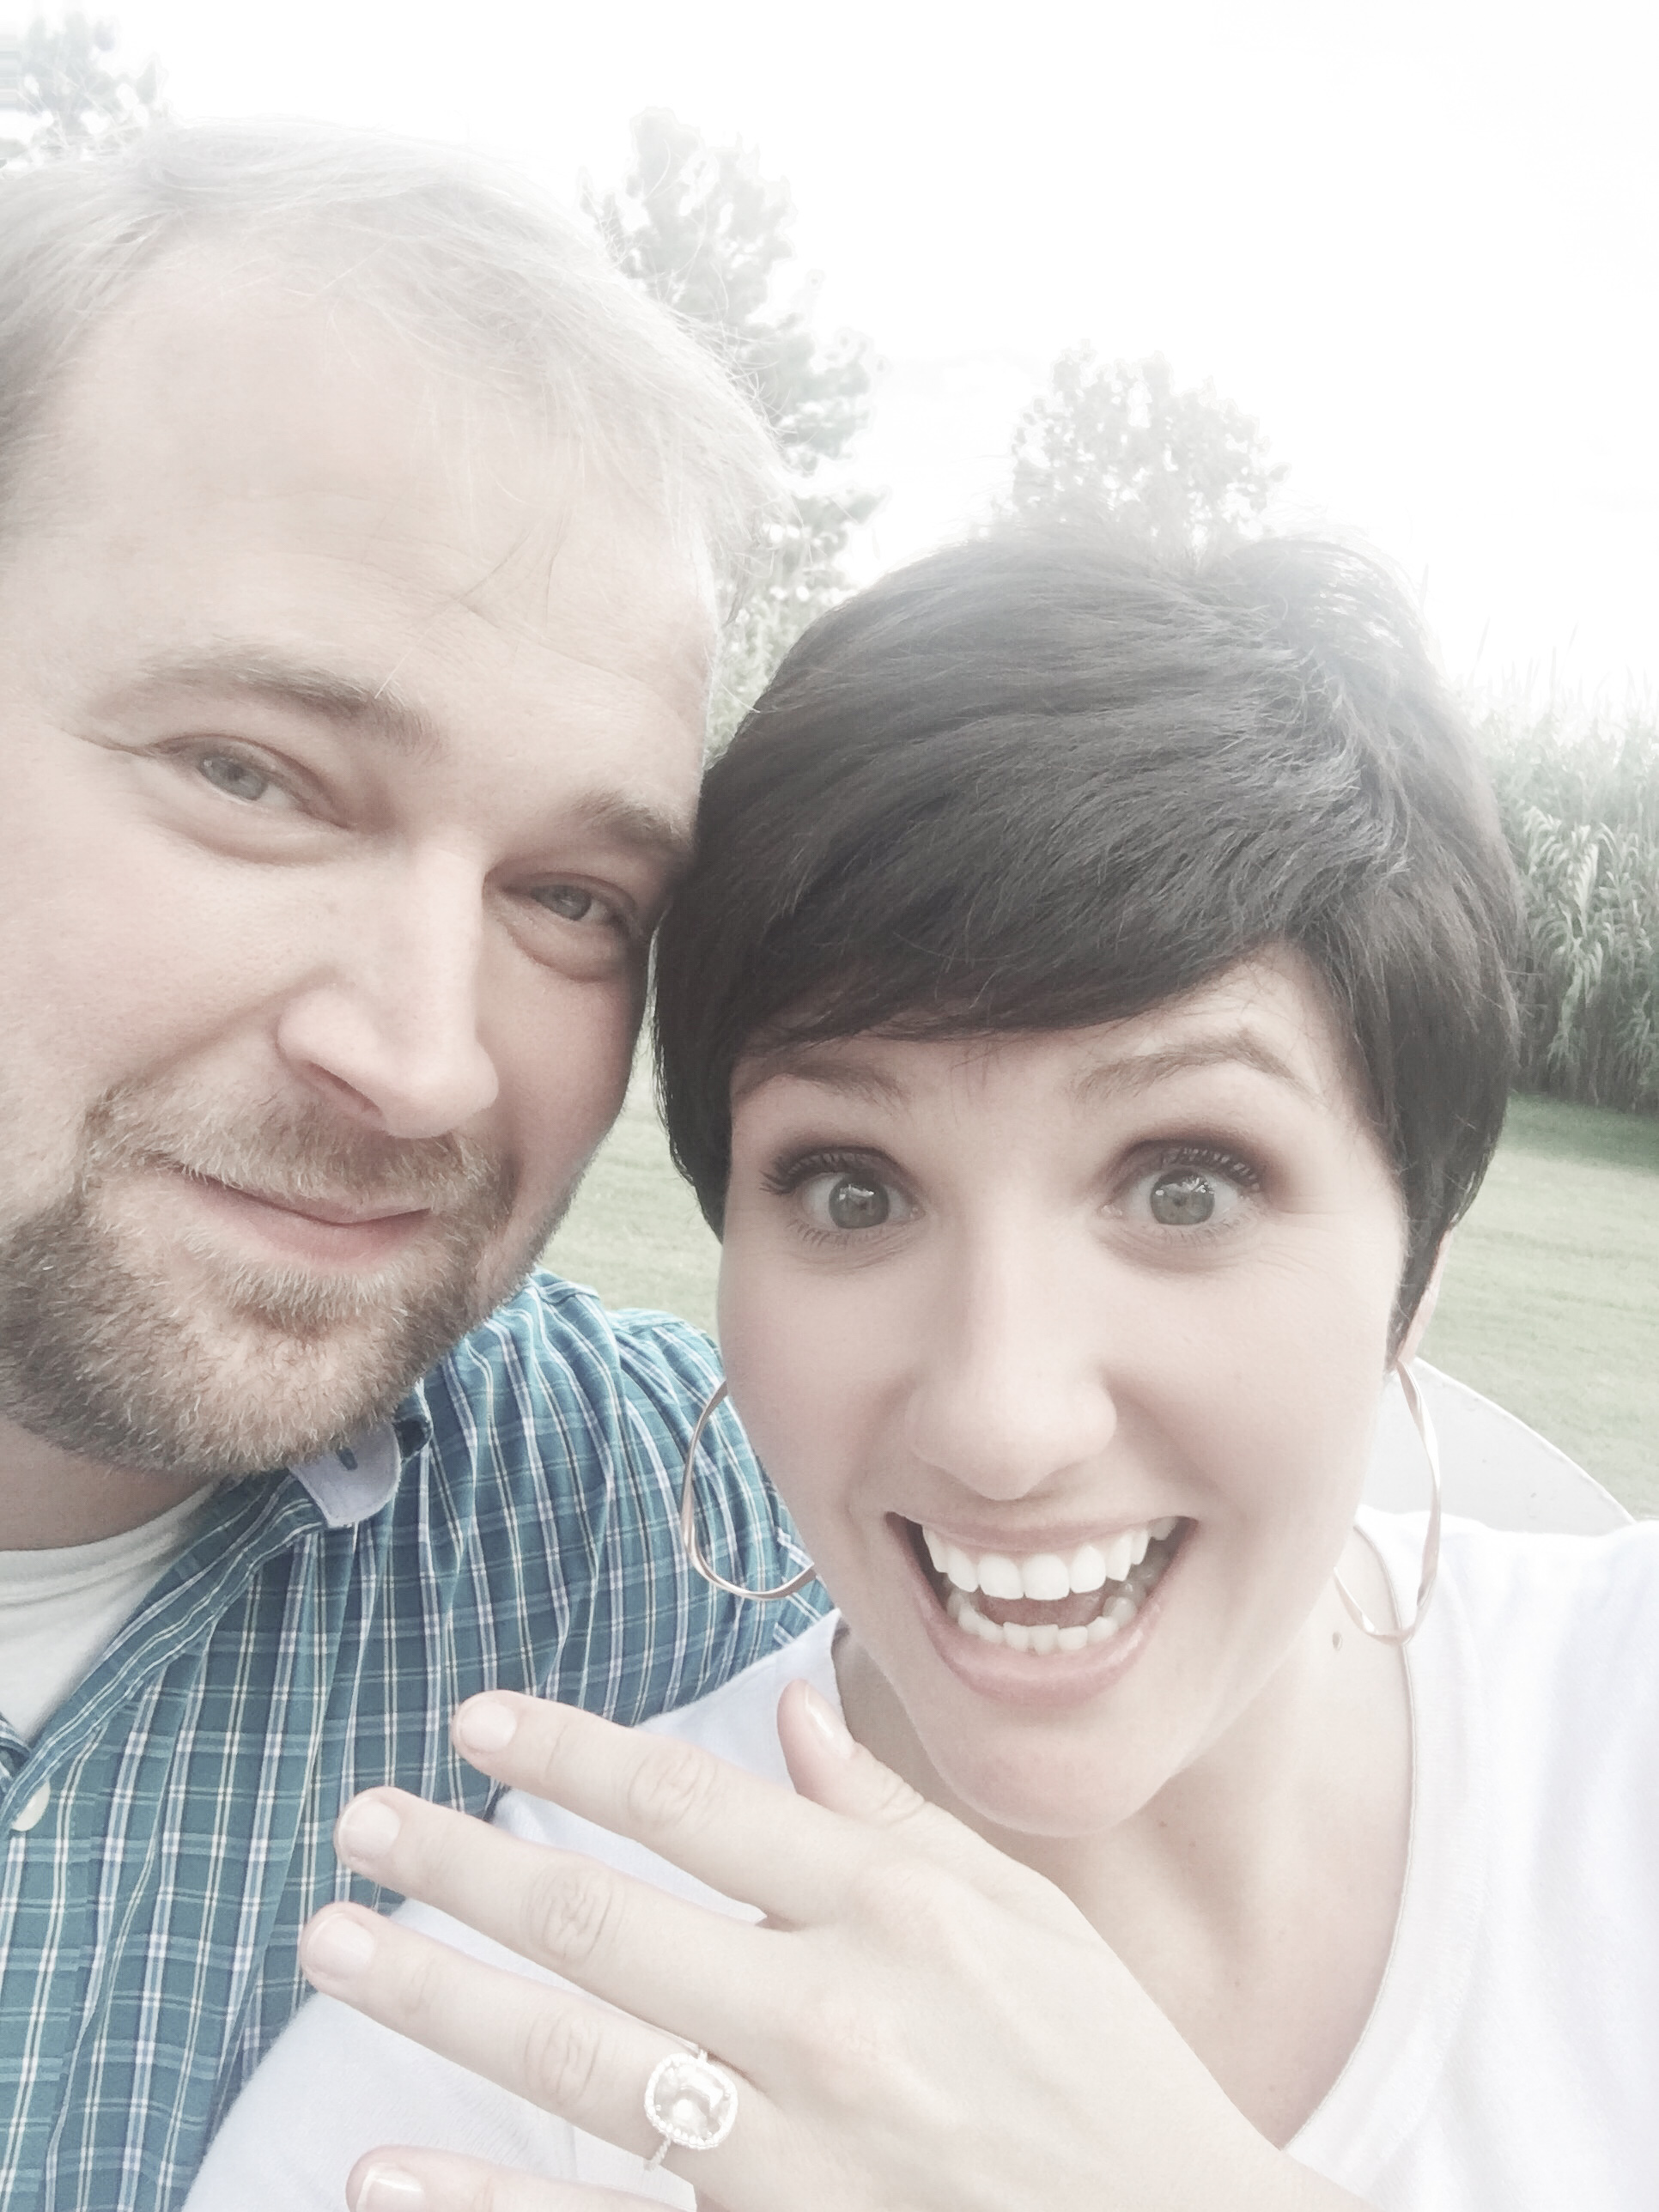 Steven and I on our engagement. It was a perfect day in the most beautiful place. Such joy and excitement!